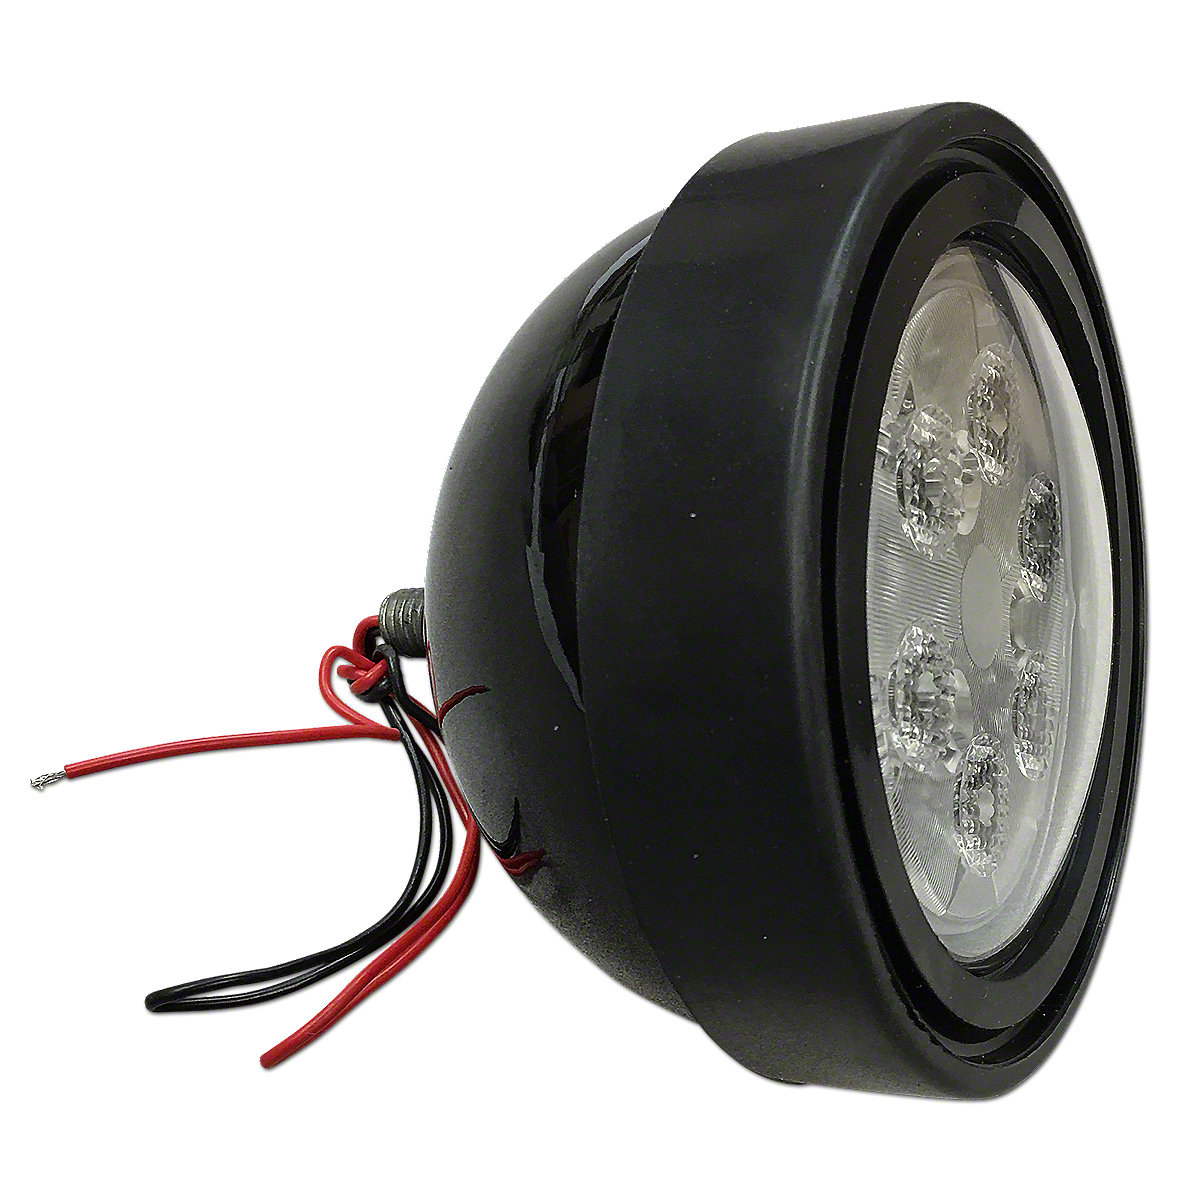 Universal Tractor Lights : Universal volt led light assembly tractor